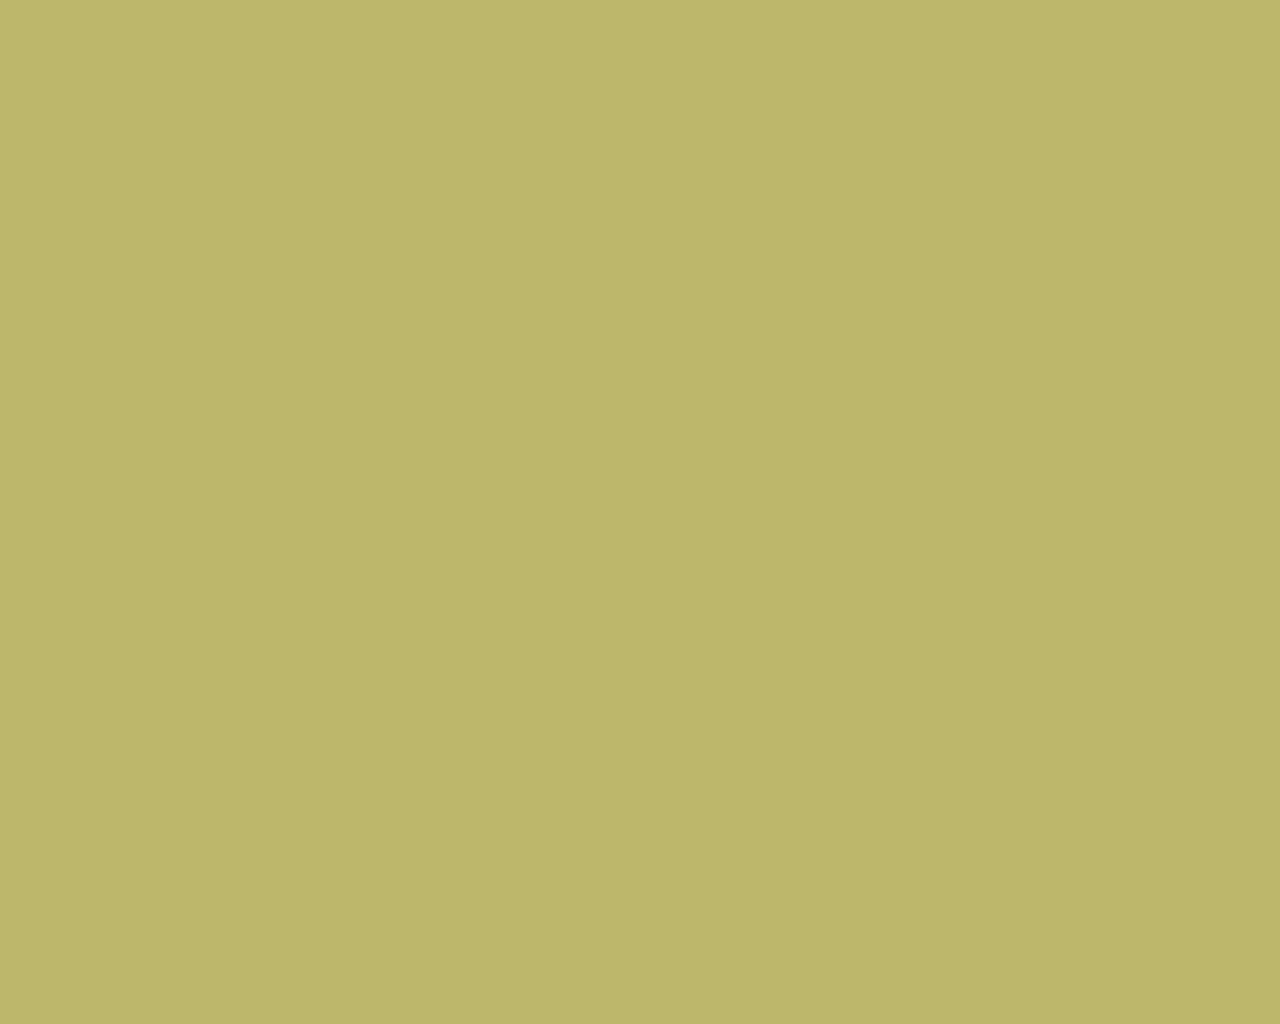 1280x1024 Dark Khaki Solid Color Background